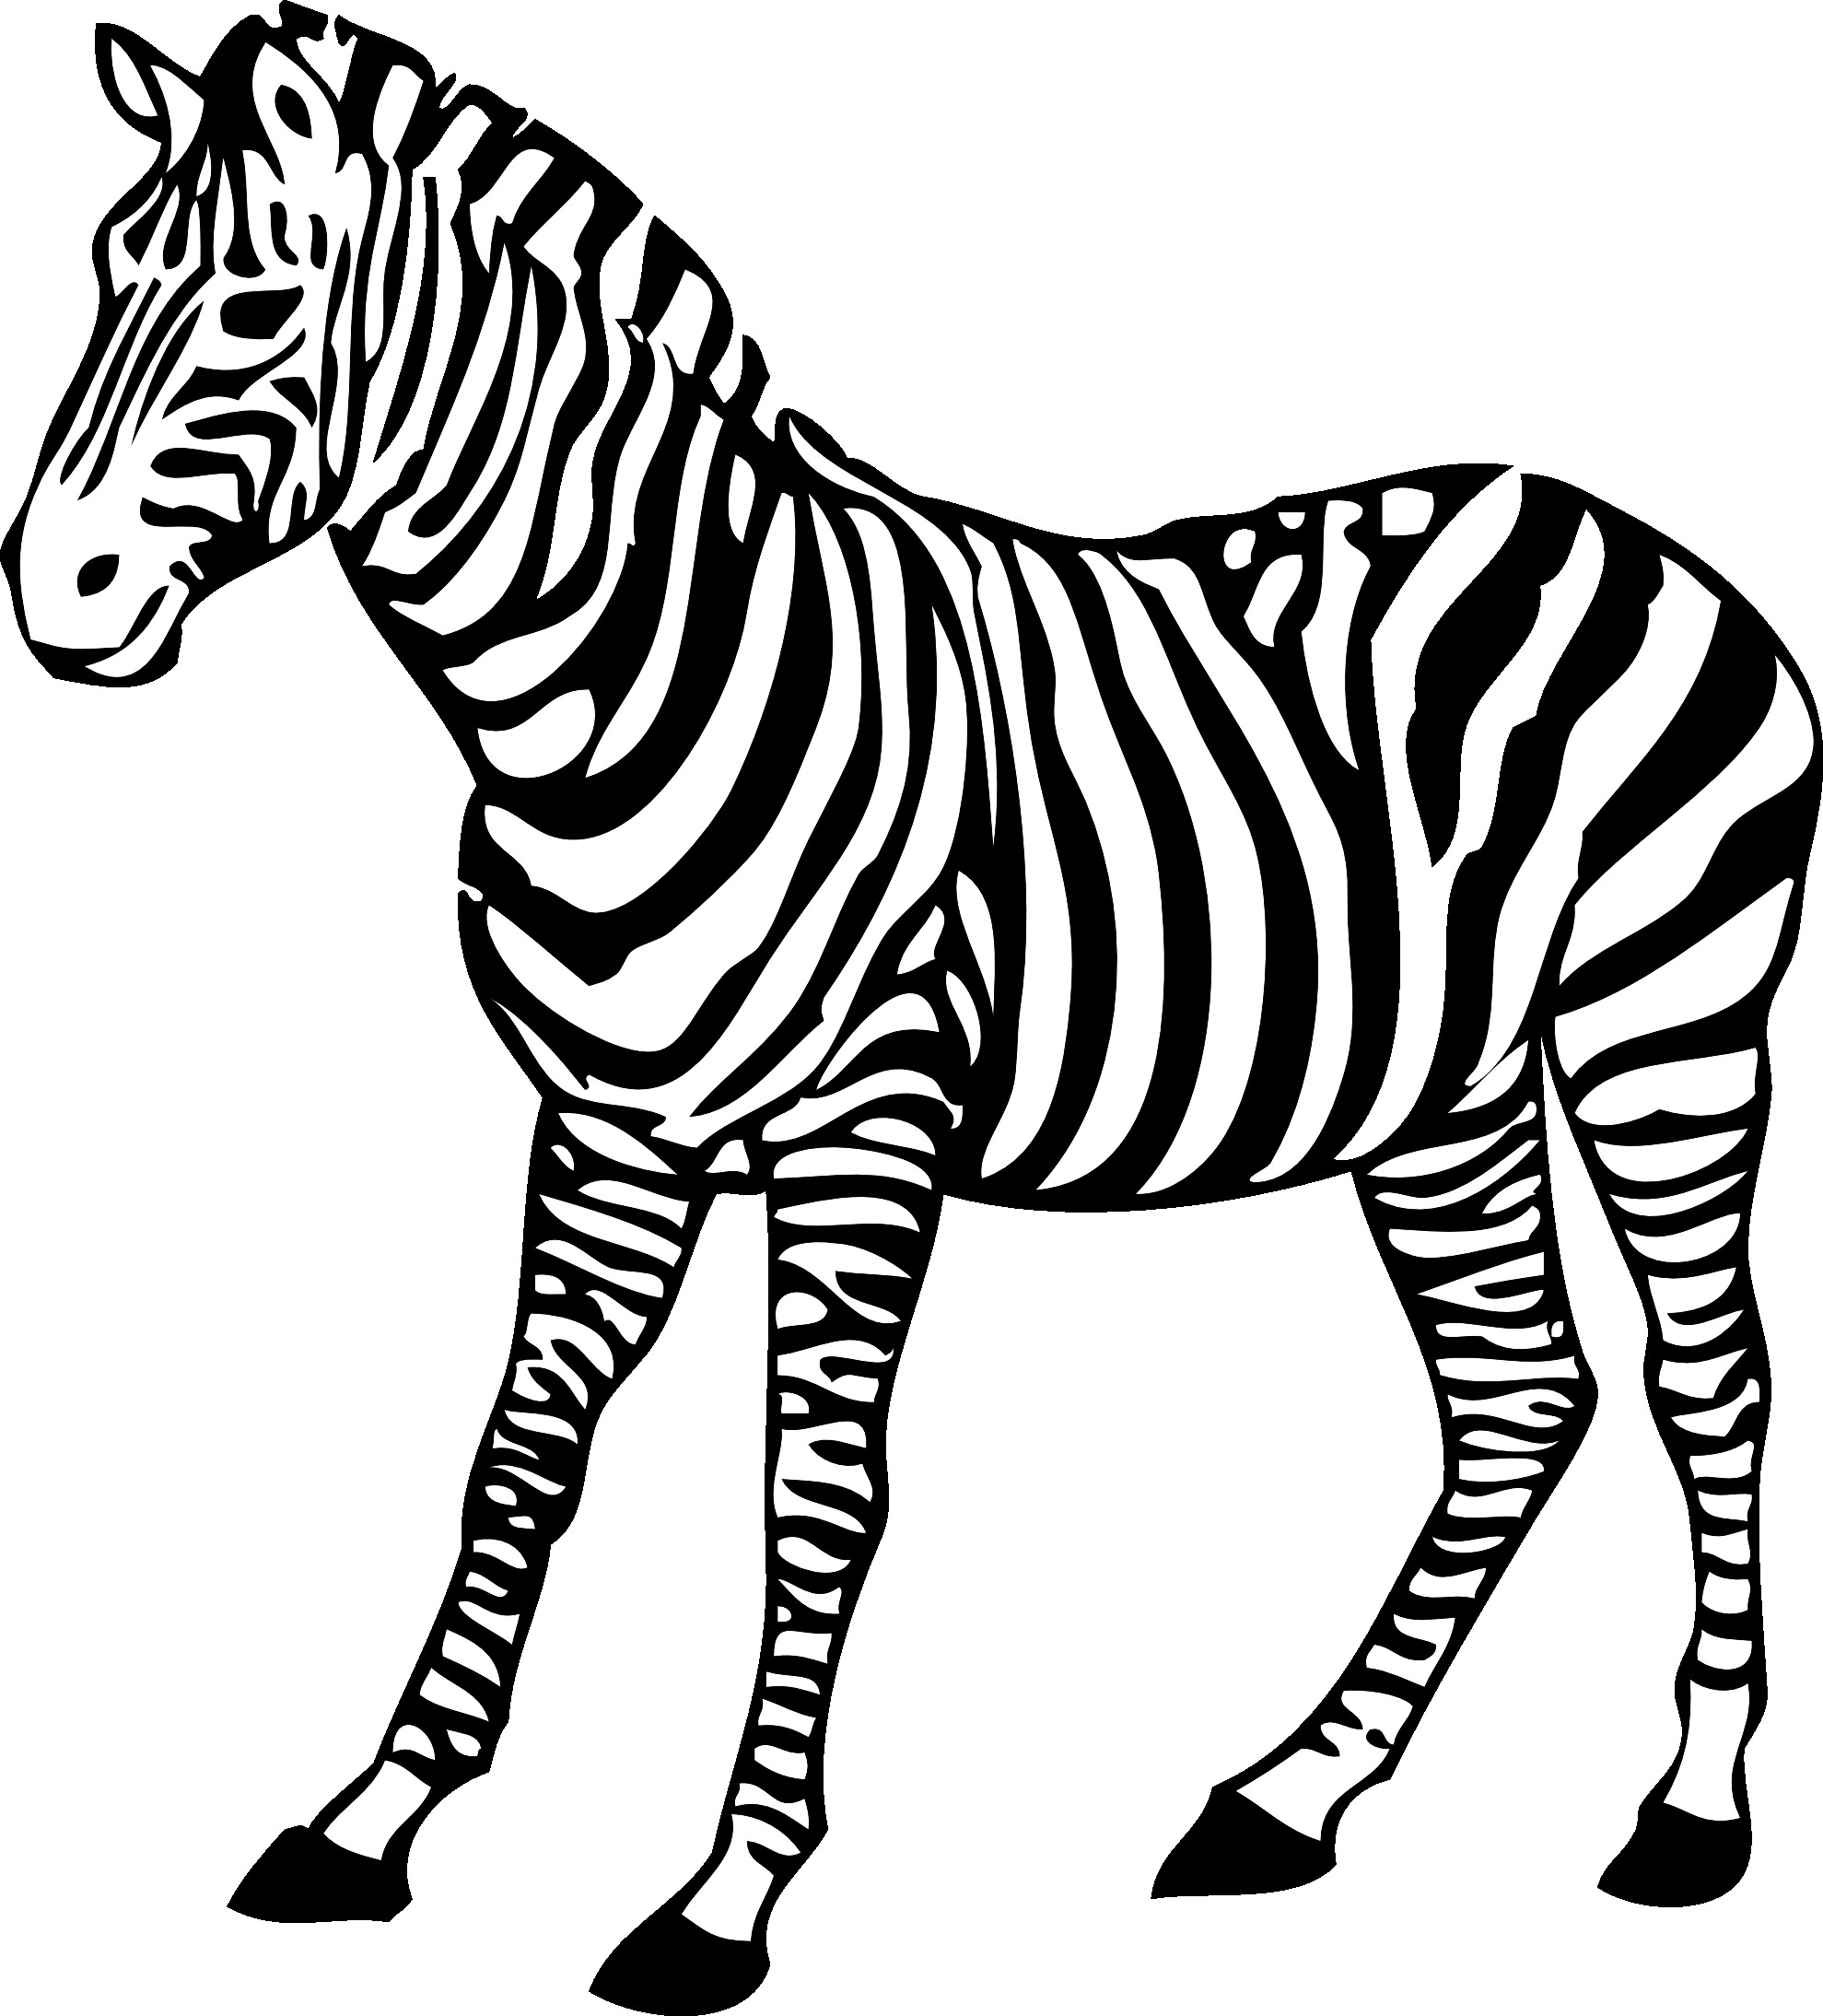 free zebra coloring pages to print free printable zebra coloring pages for kids animal place zebra to coloring free print pages